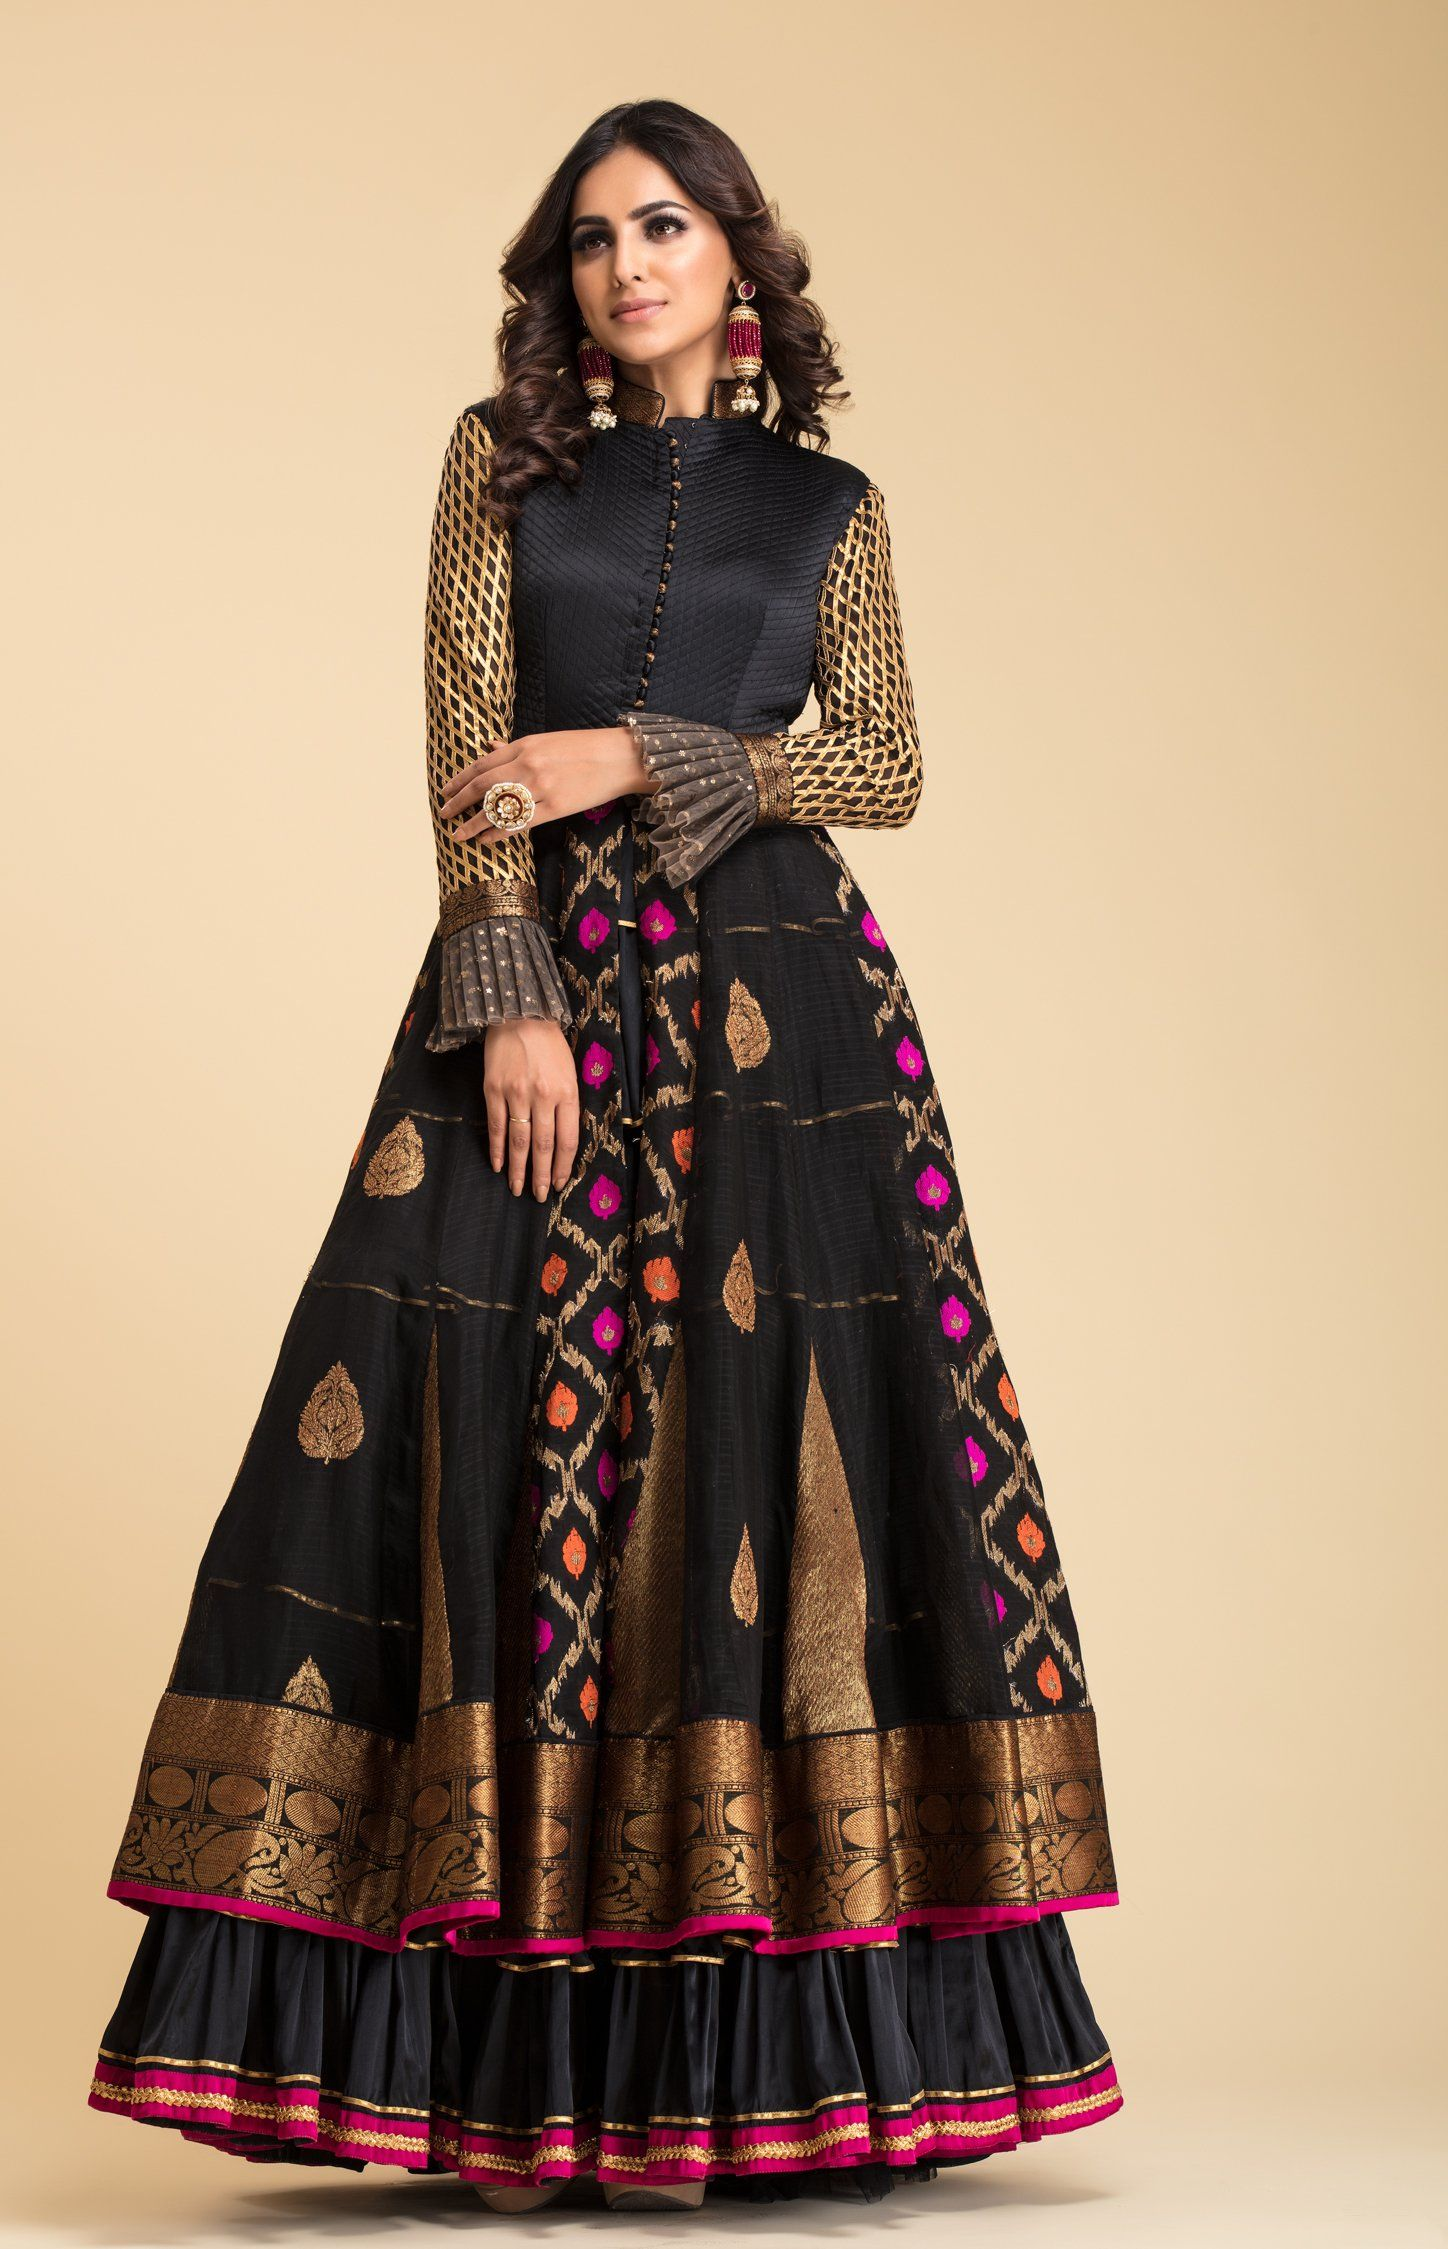 1eaa4e76878215 Black Banarsi Anarkali with quilt details on bodice and gota details on  sleeves and frills. Fabric  Heavy Satin   Jacquard